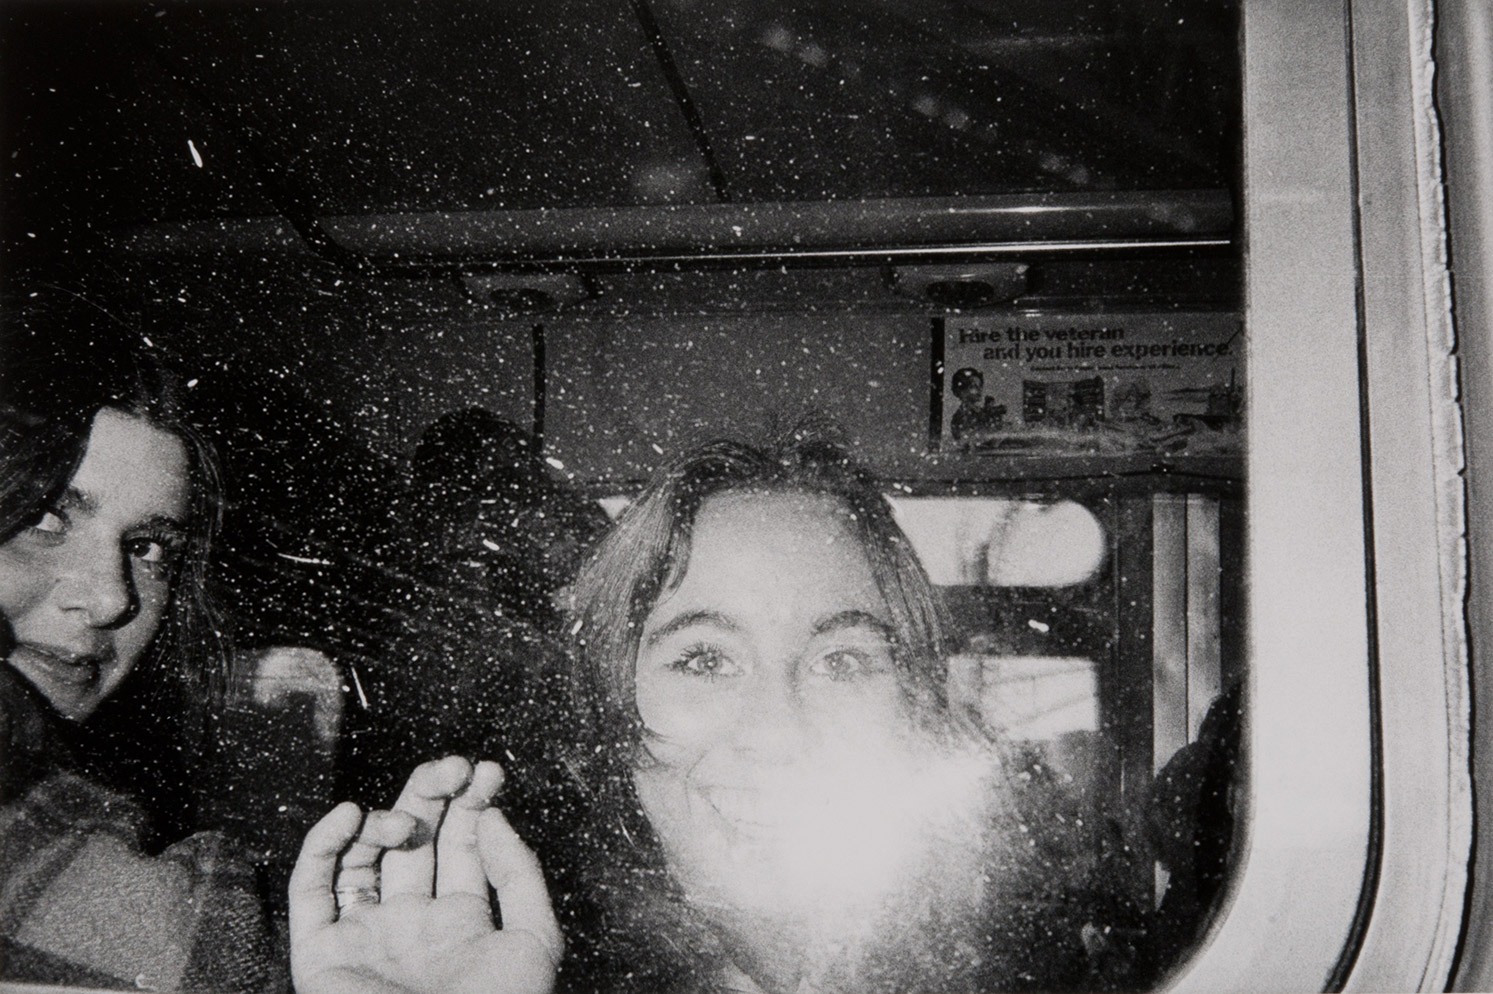 Untitled (girls' faces flashed in the bus window)